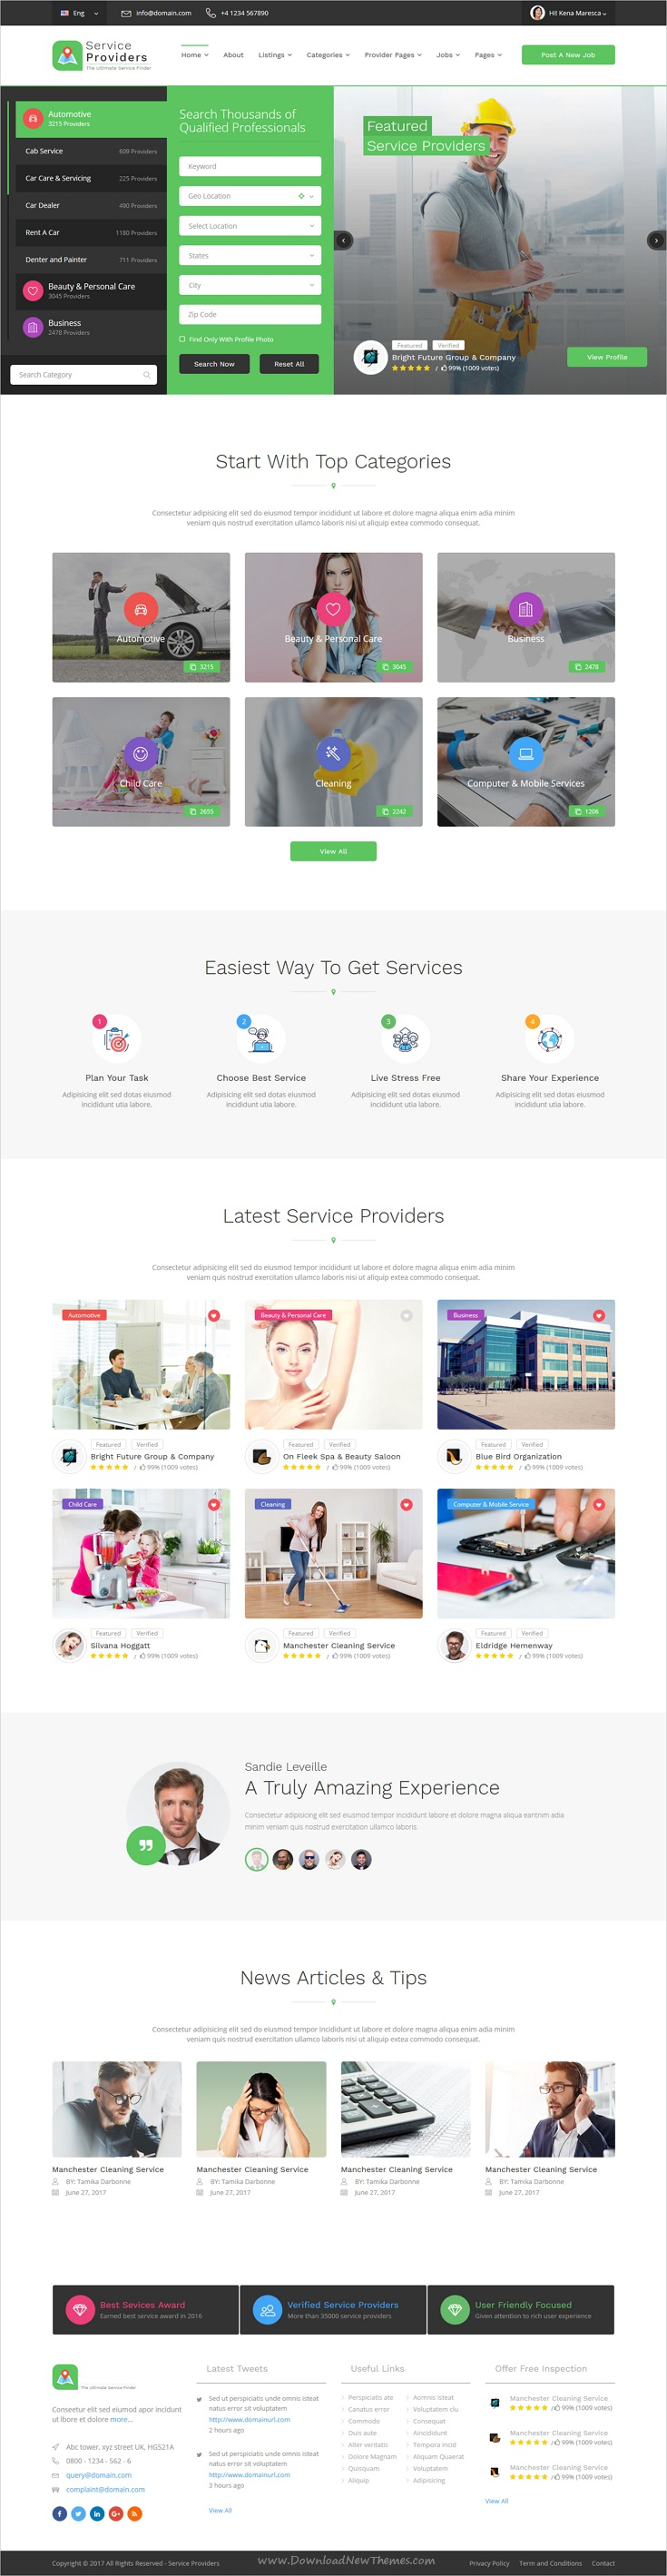 Service providers is a clean and contemporary design html service providers is a clean and contemporary design html bootstrap template for business directory listing website download now wajeb Choice Image